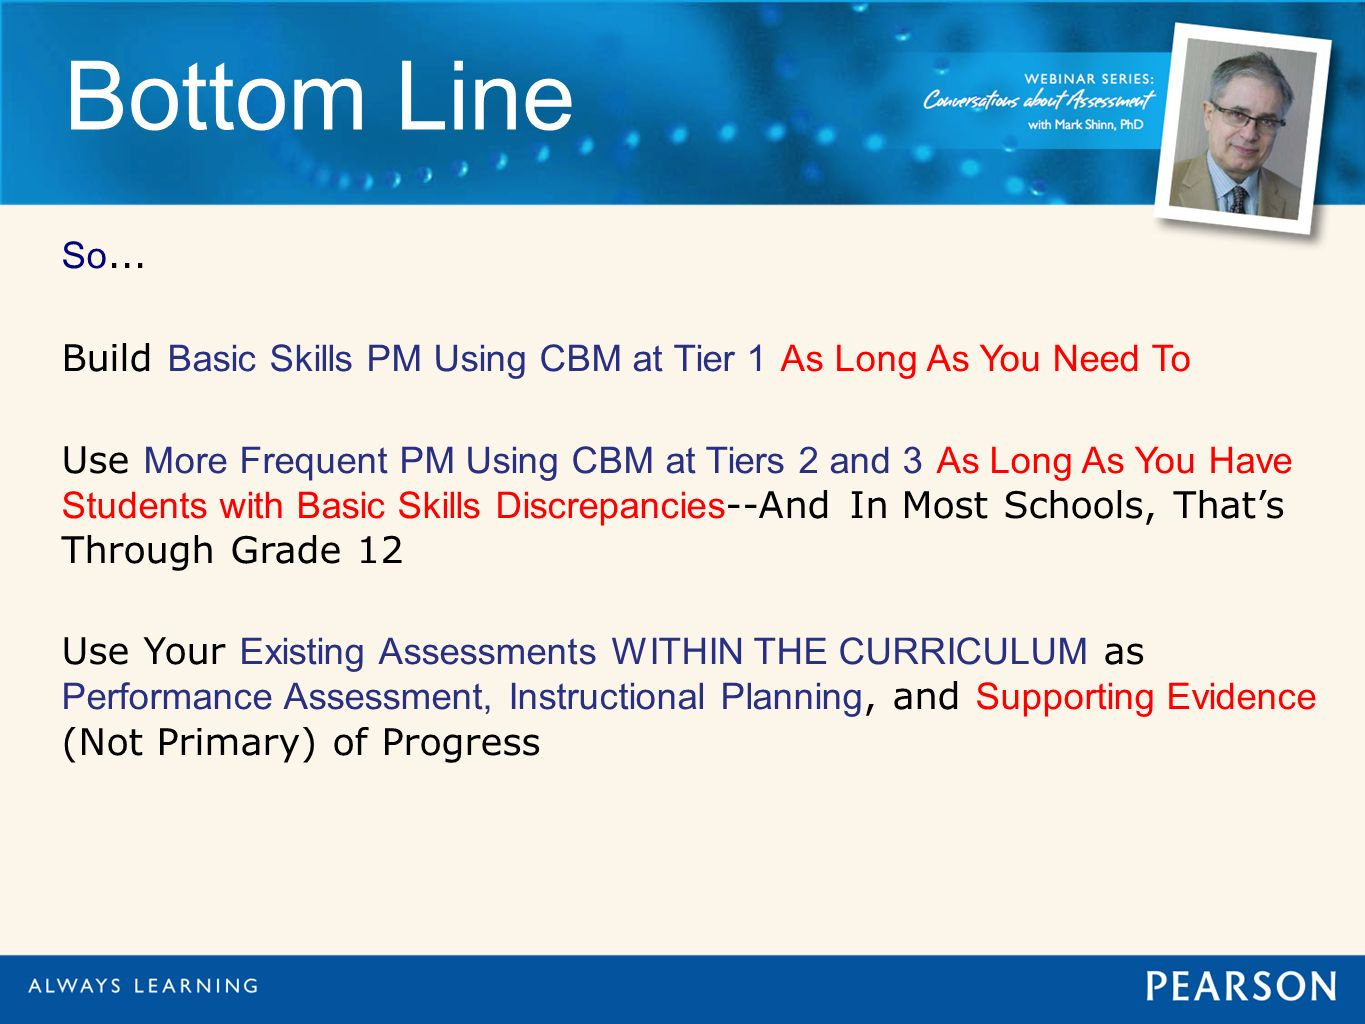 Bottom Line So... Build Basic Skills PM Using CBM at Tier 1 As Long As You Need To.